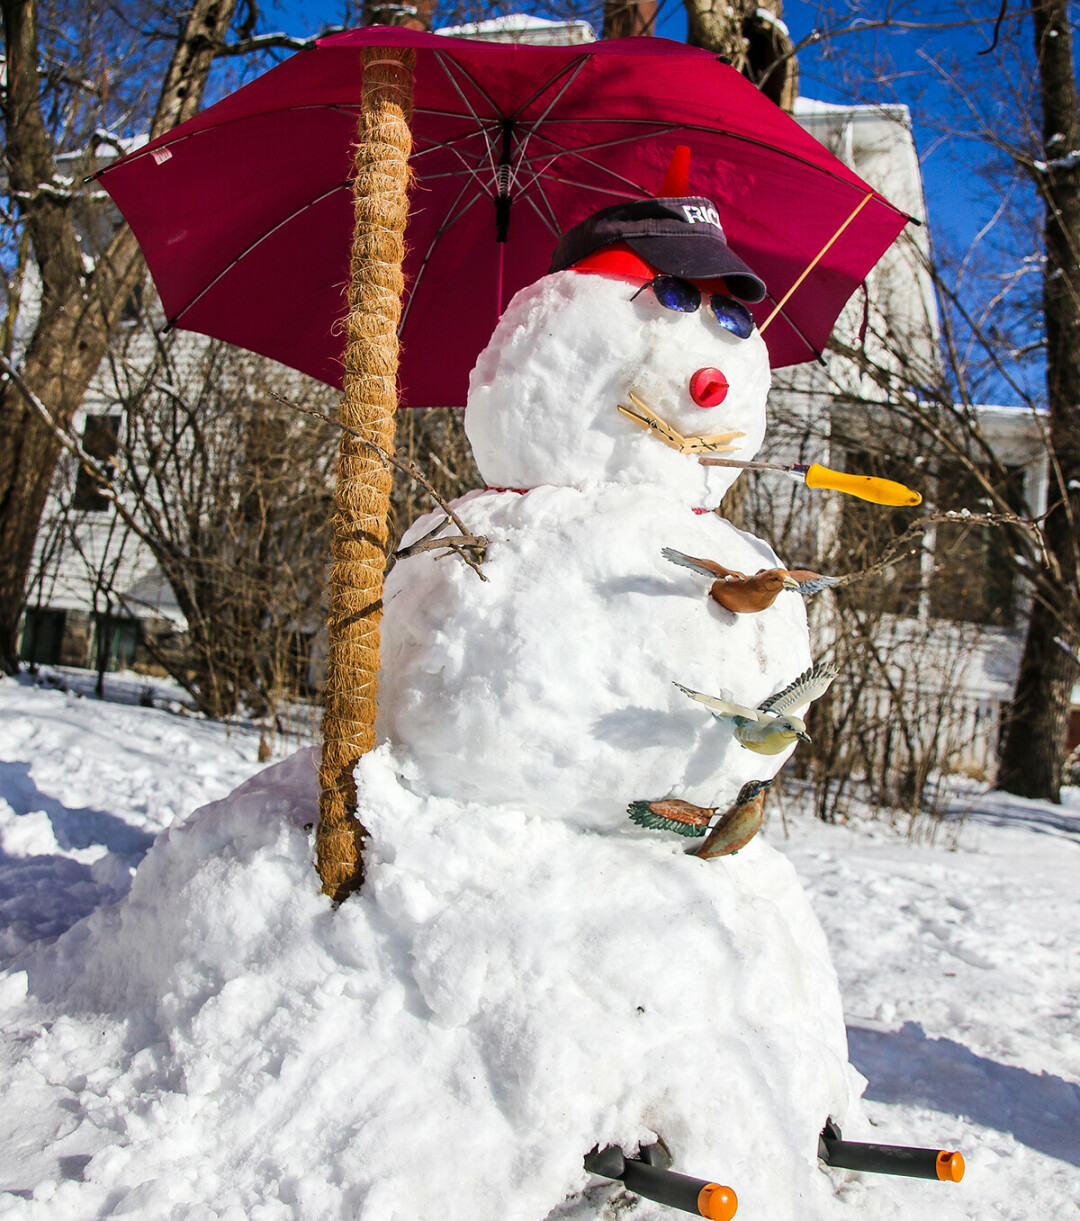 SNOW FUN. When life gives you snow, make a snowman – like this guy from a couple of winters ago.